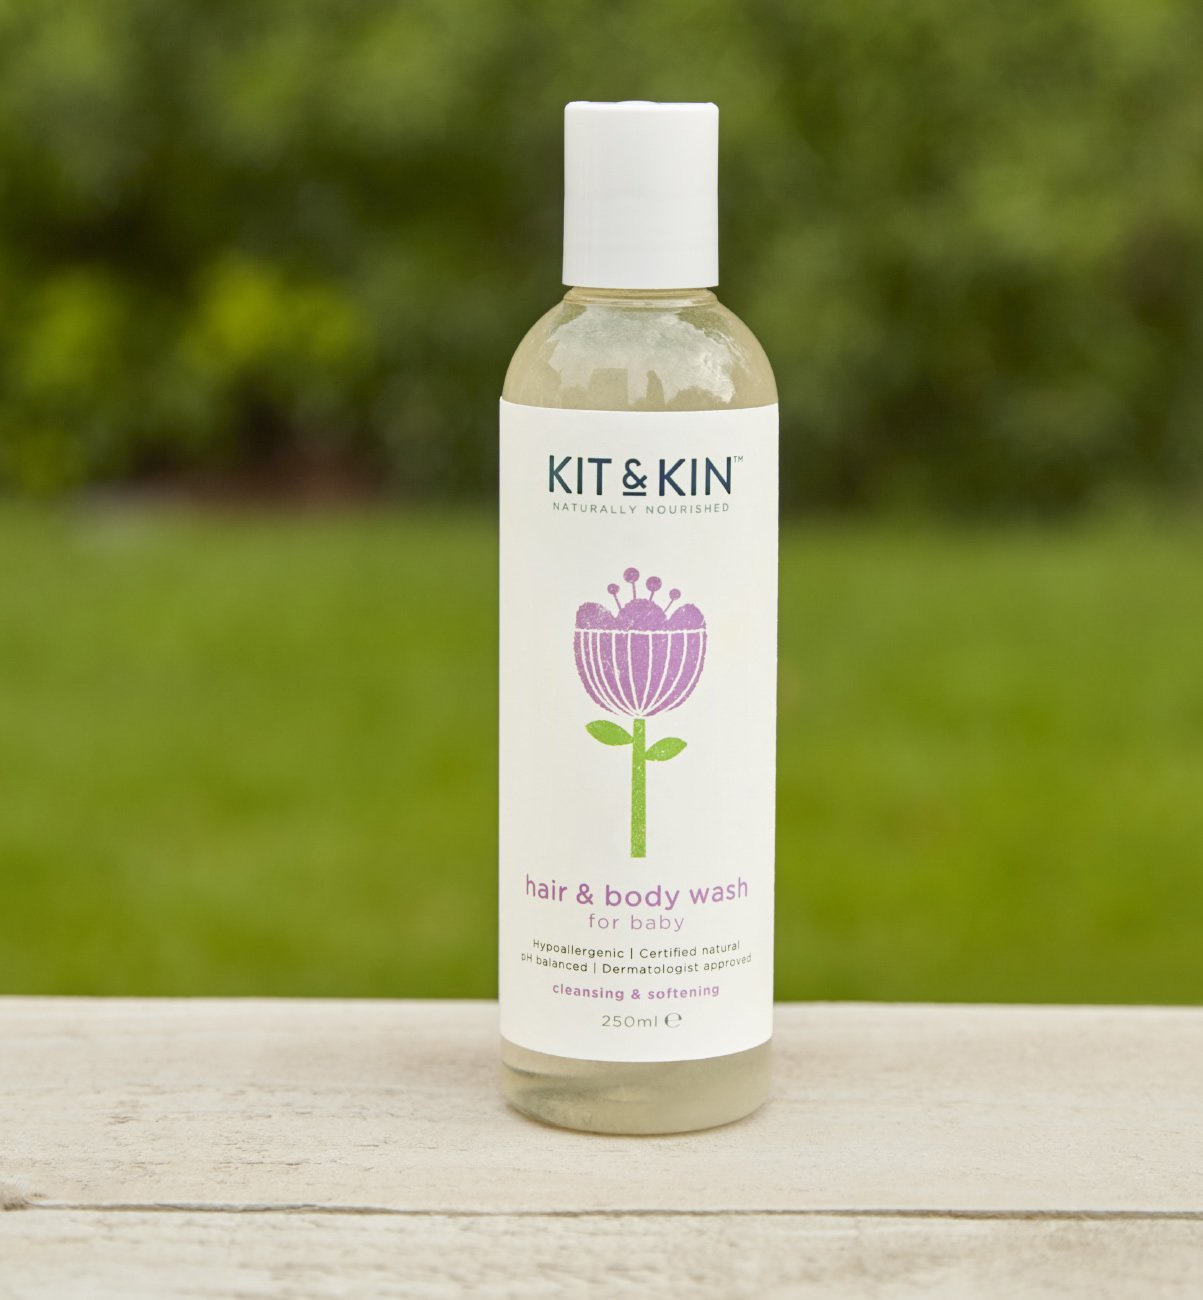 Kit & Kin Hypoallergenic hair & body wash